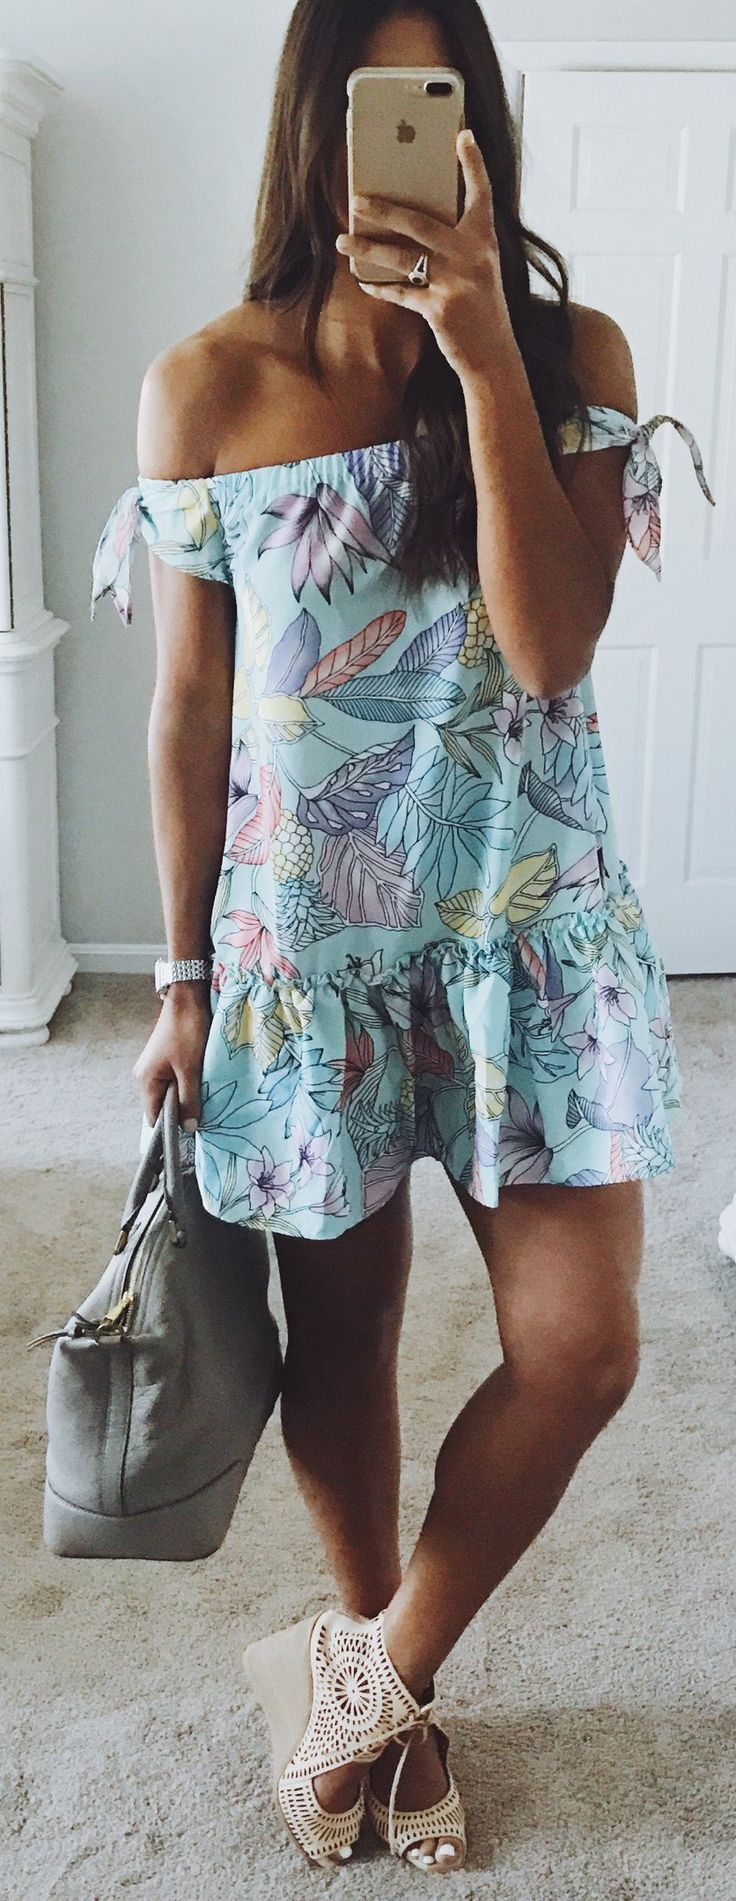 Blue Flower Printed Dress & Grey Tote Bag & Beige Pumps